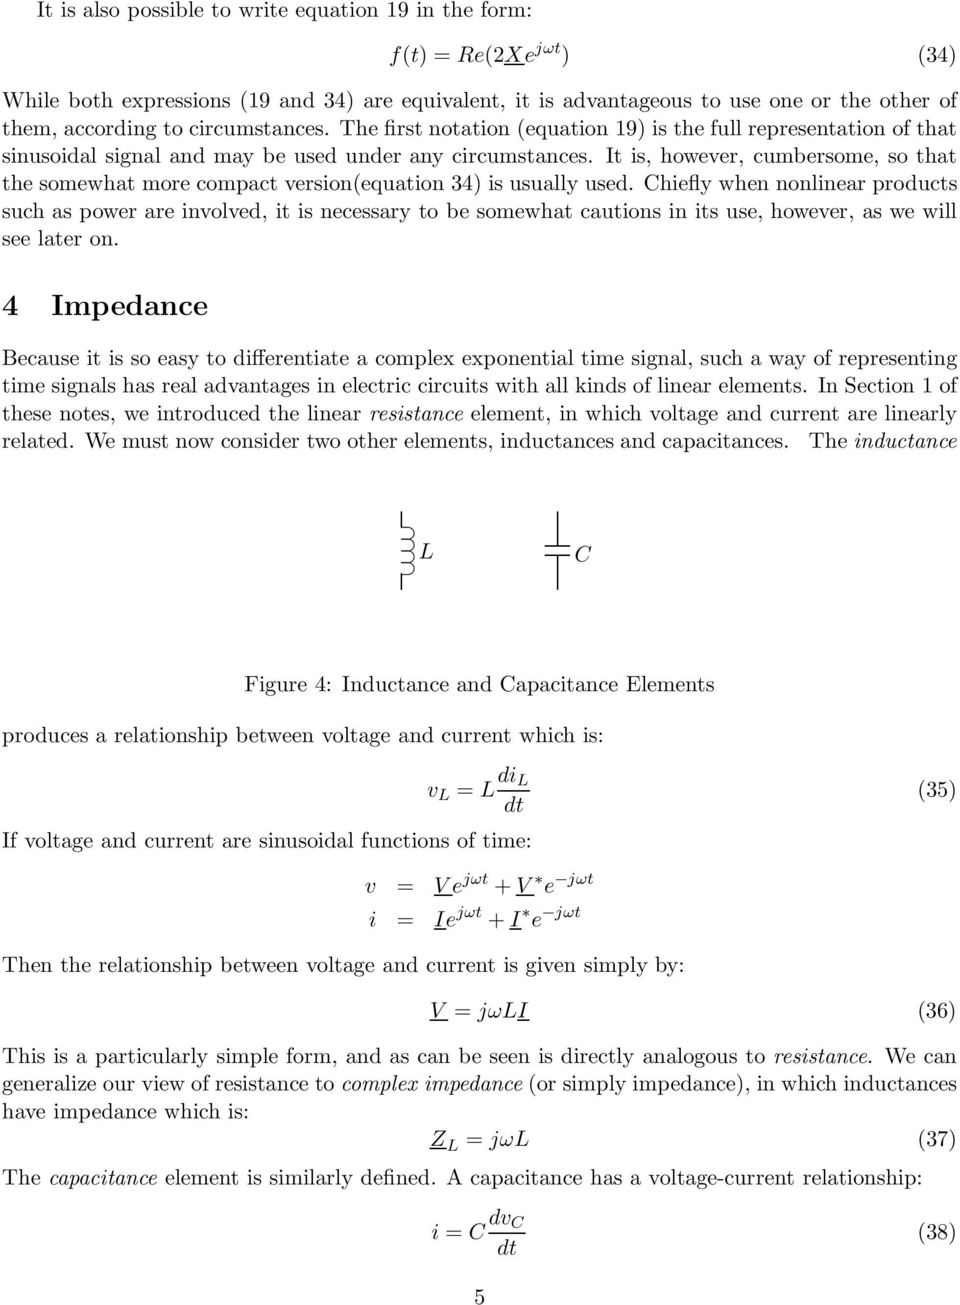 1 Introduction 2 Complex Exponential Notation Jl Kirtley Jr Pdf Rectifier Circuit Is That It Expands Easily Into A Polyphase Version However Cumbersome So The Somewhat More Compact Equation